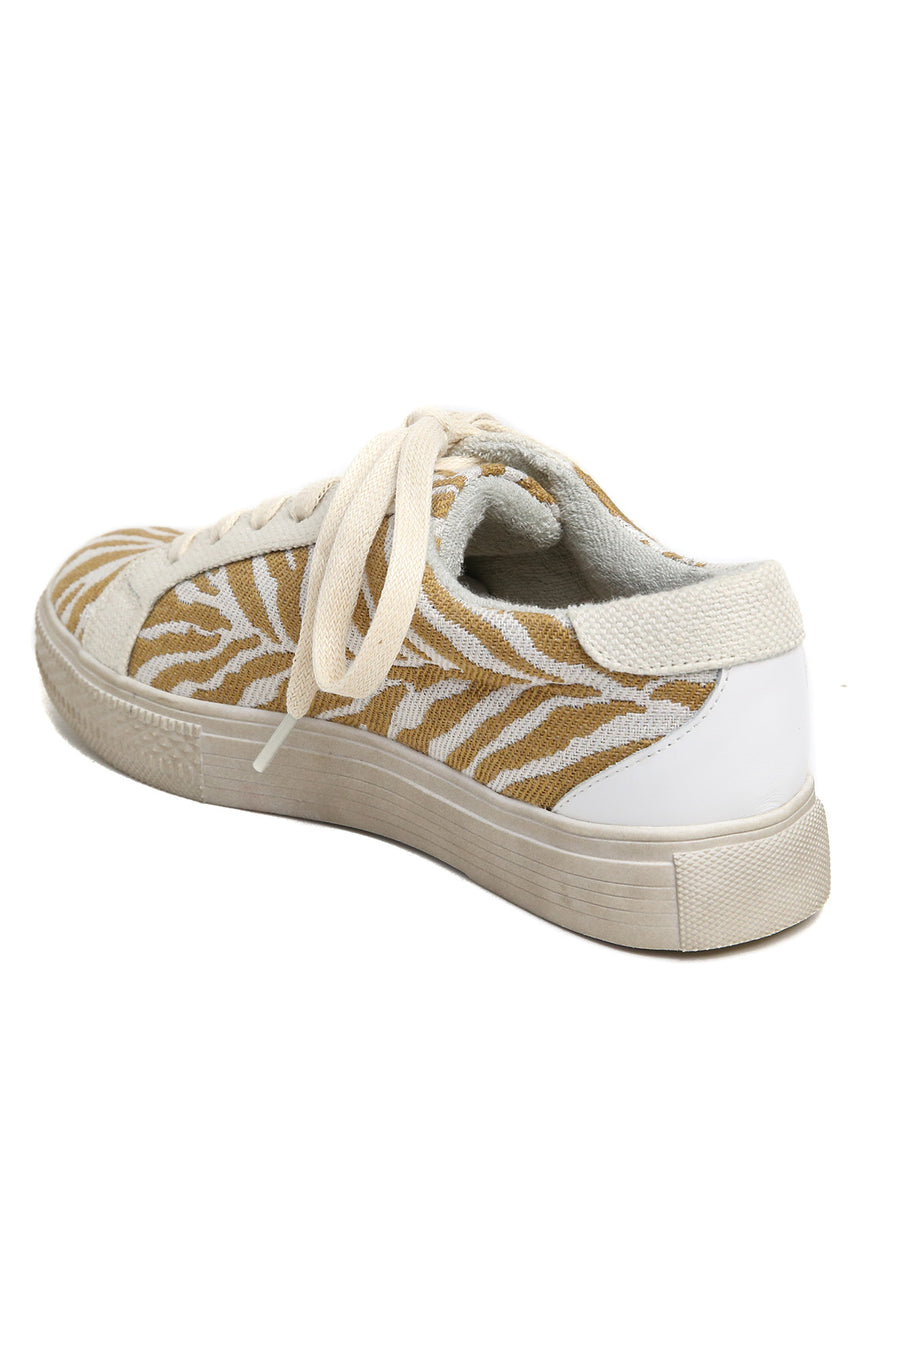 Star Natural Zebra Canvas Sneakers Master